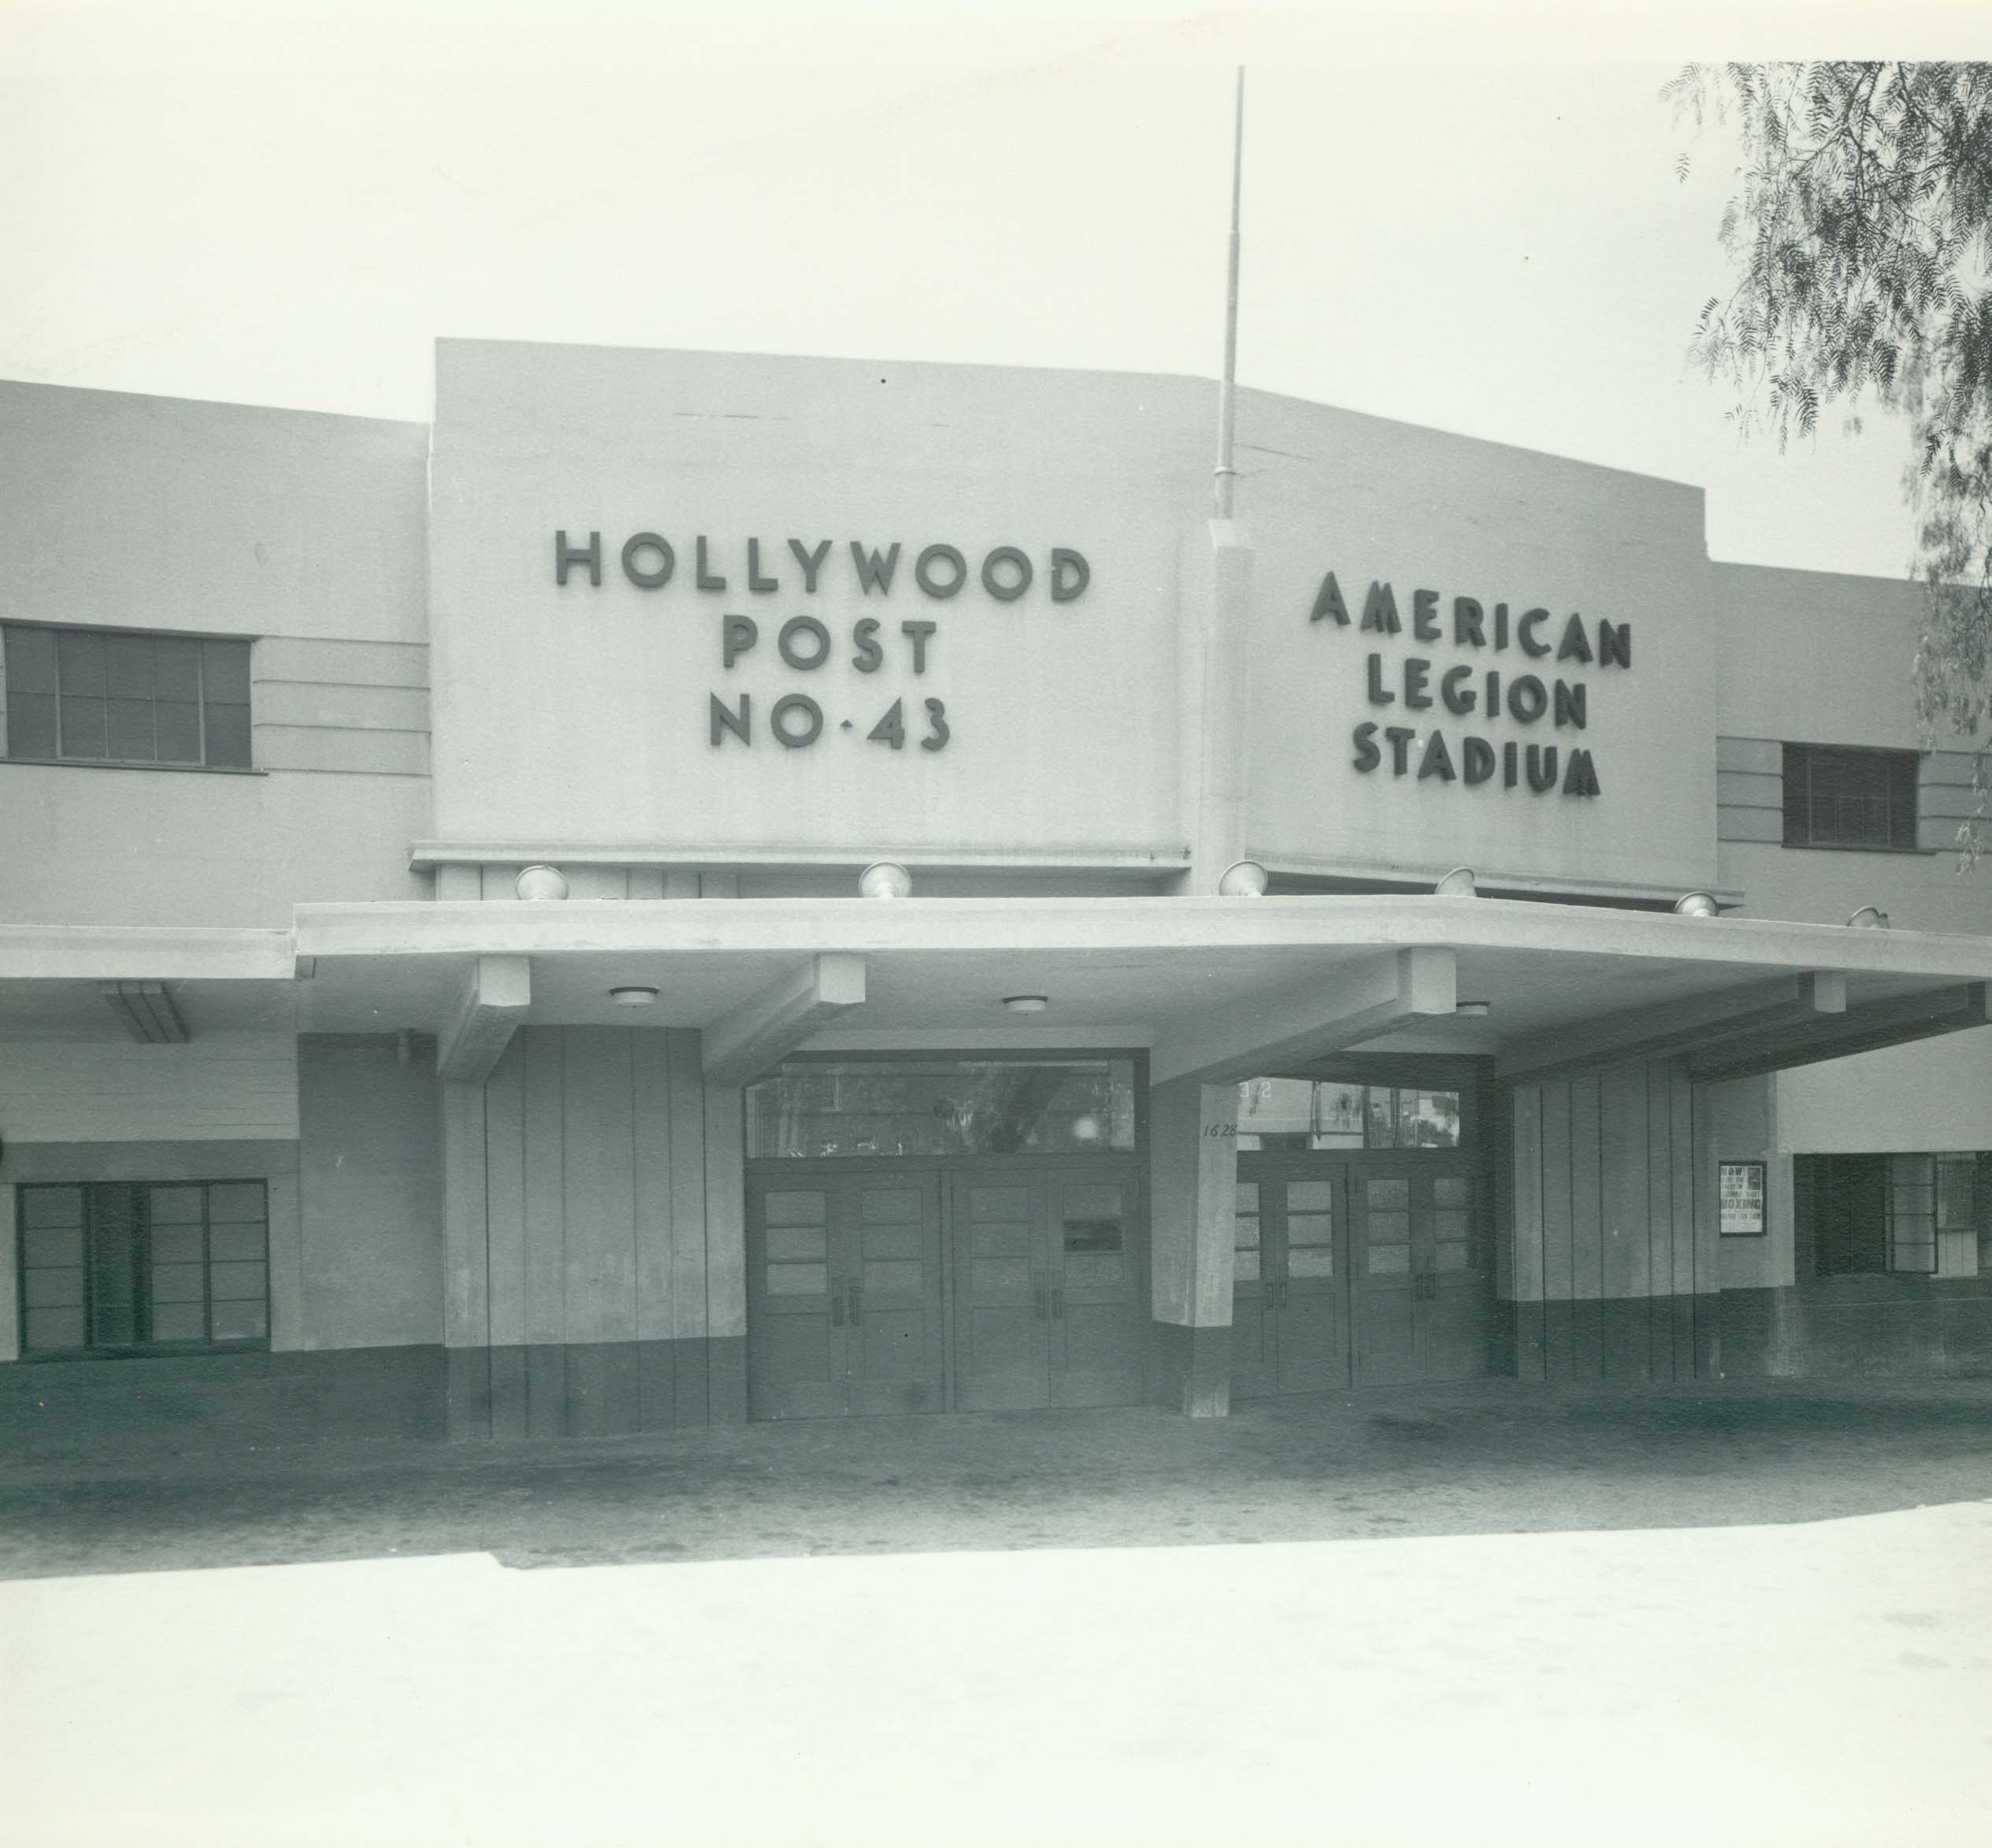 Exterior of Hollywood Legion Stadium